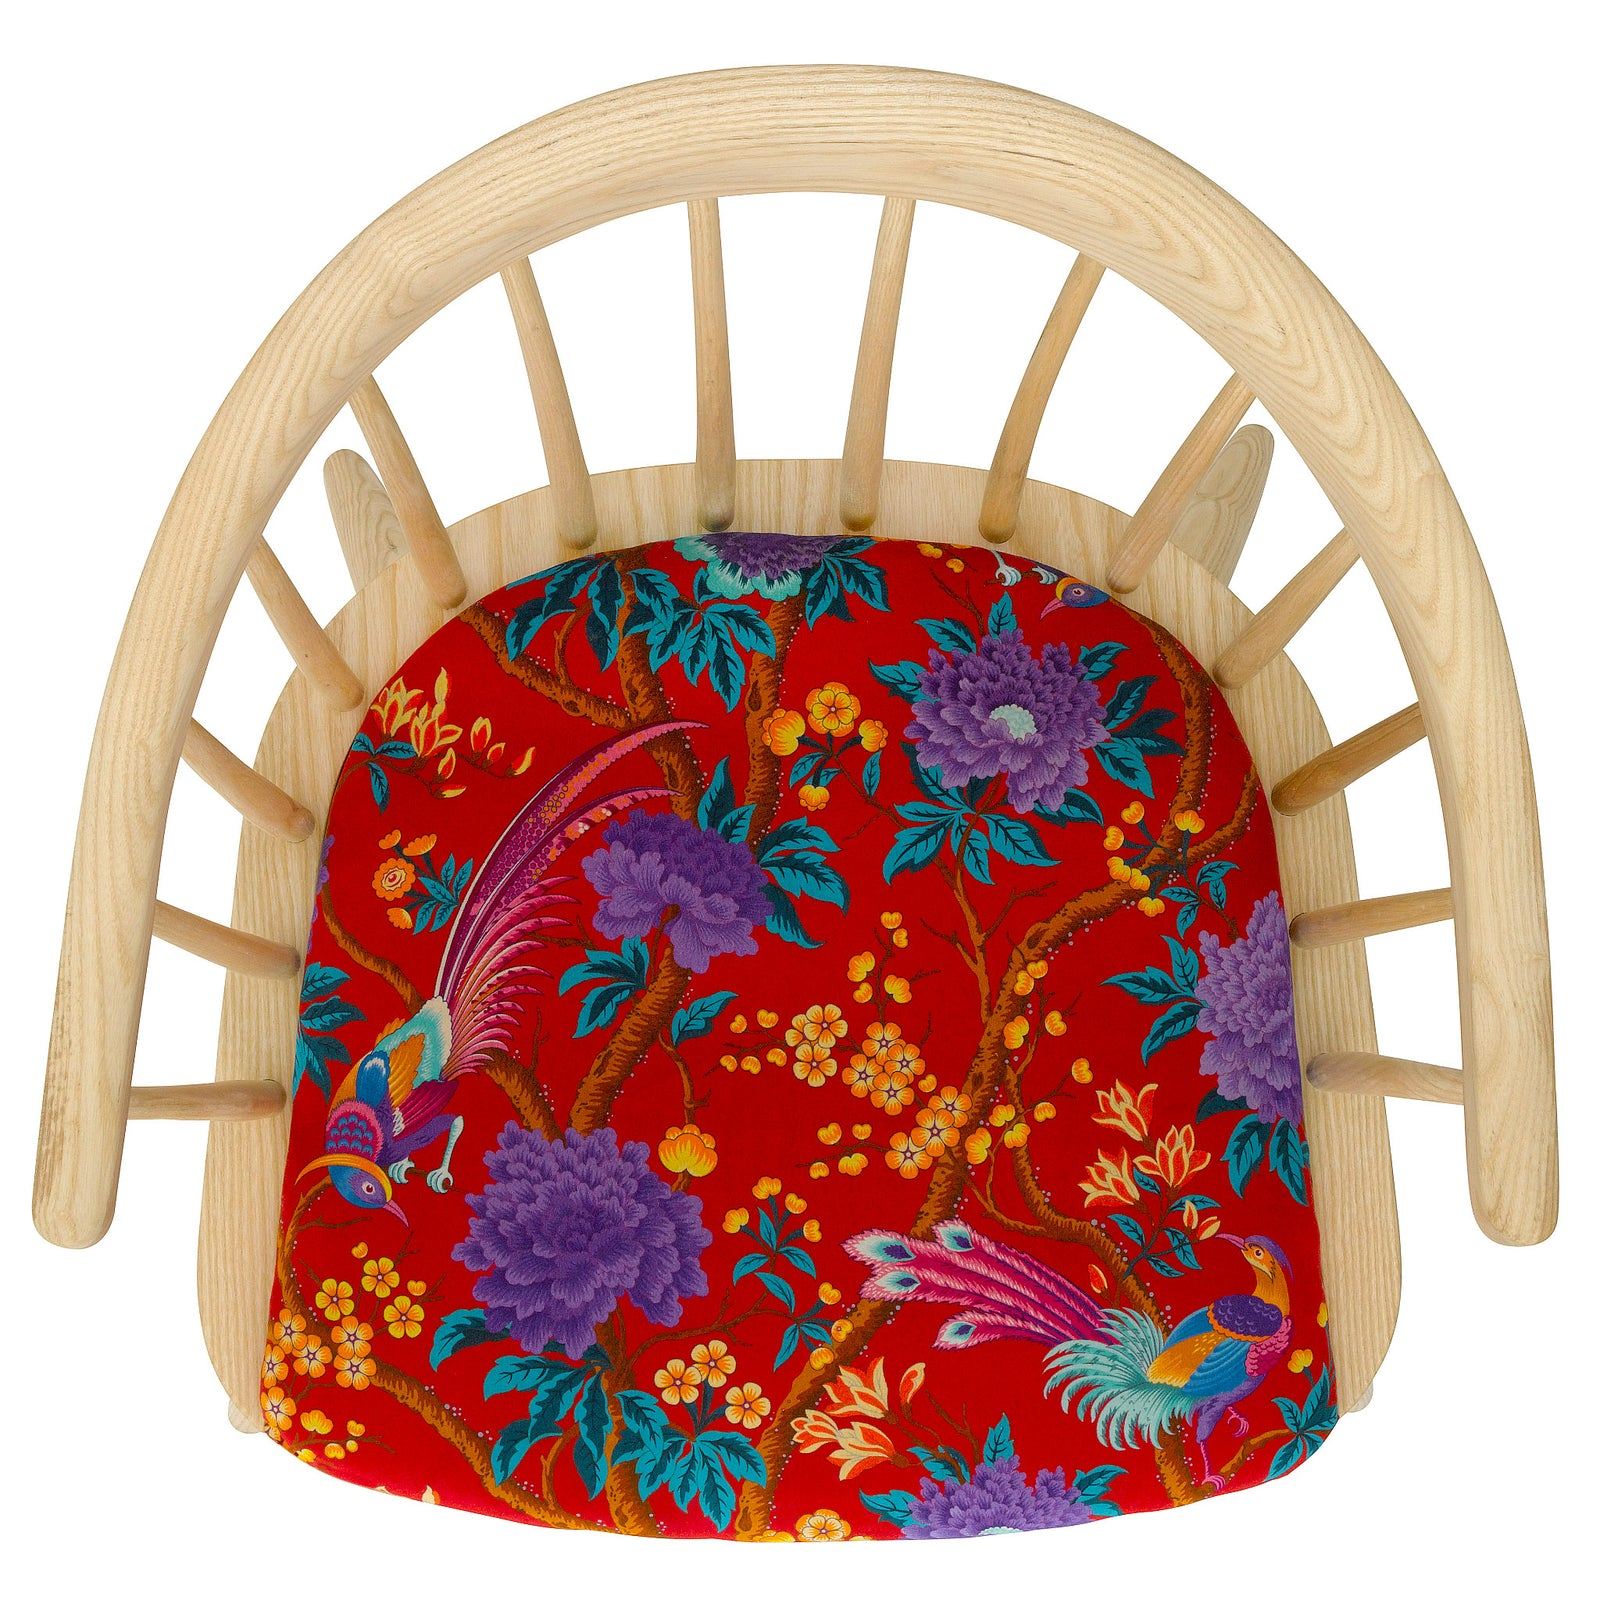 The Darwin Armchair in Elysian Paradise by Liberty London